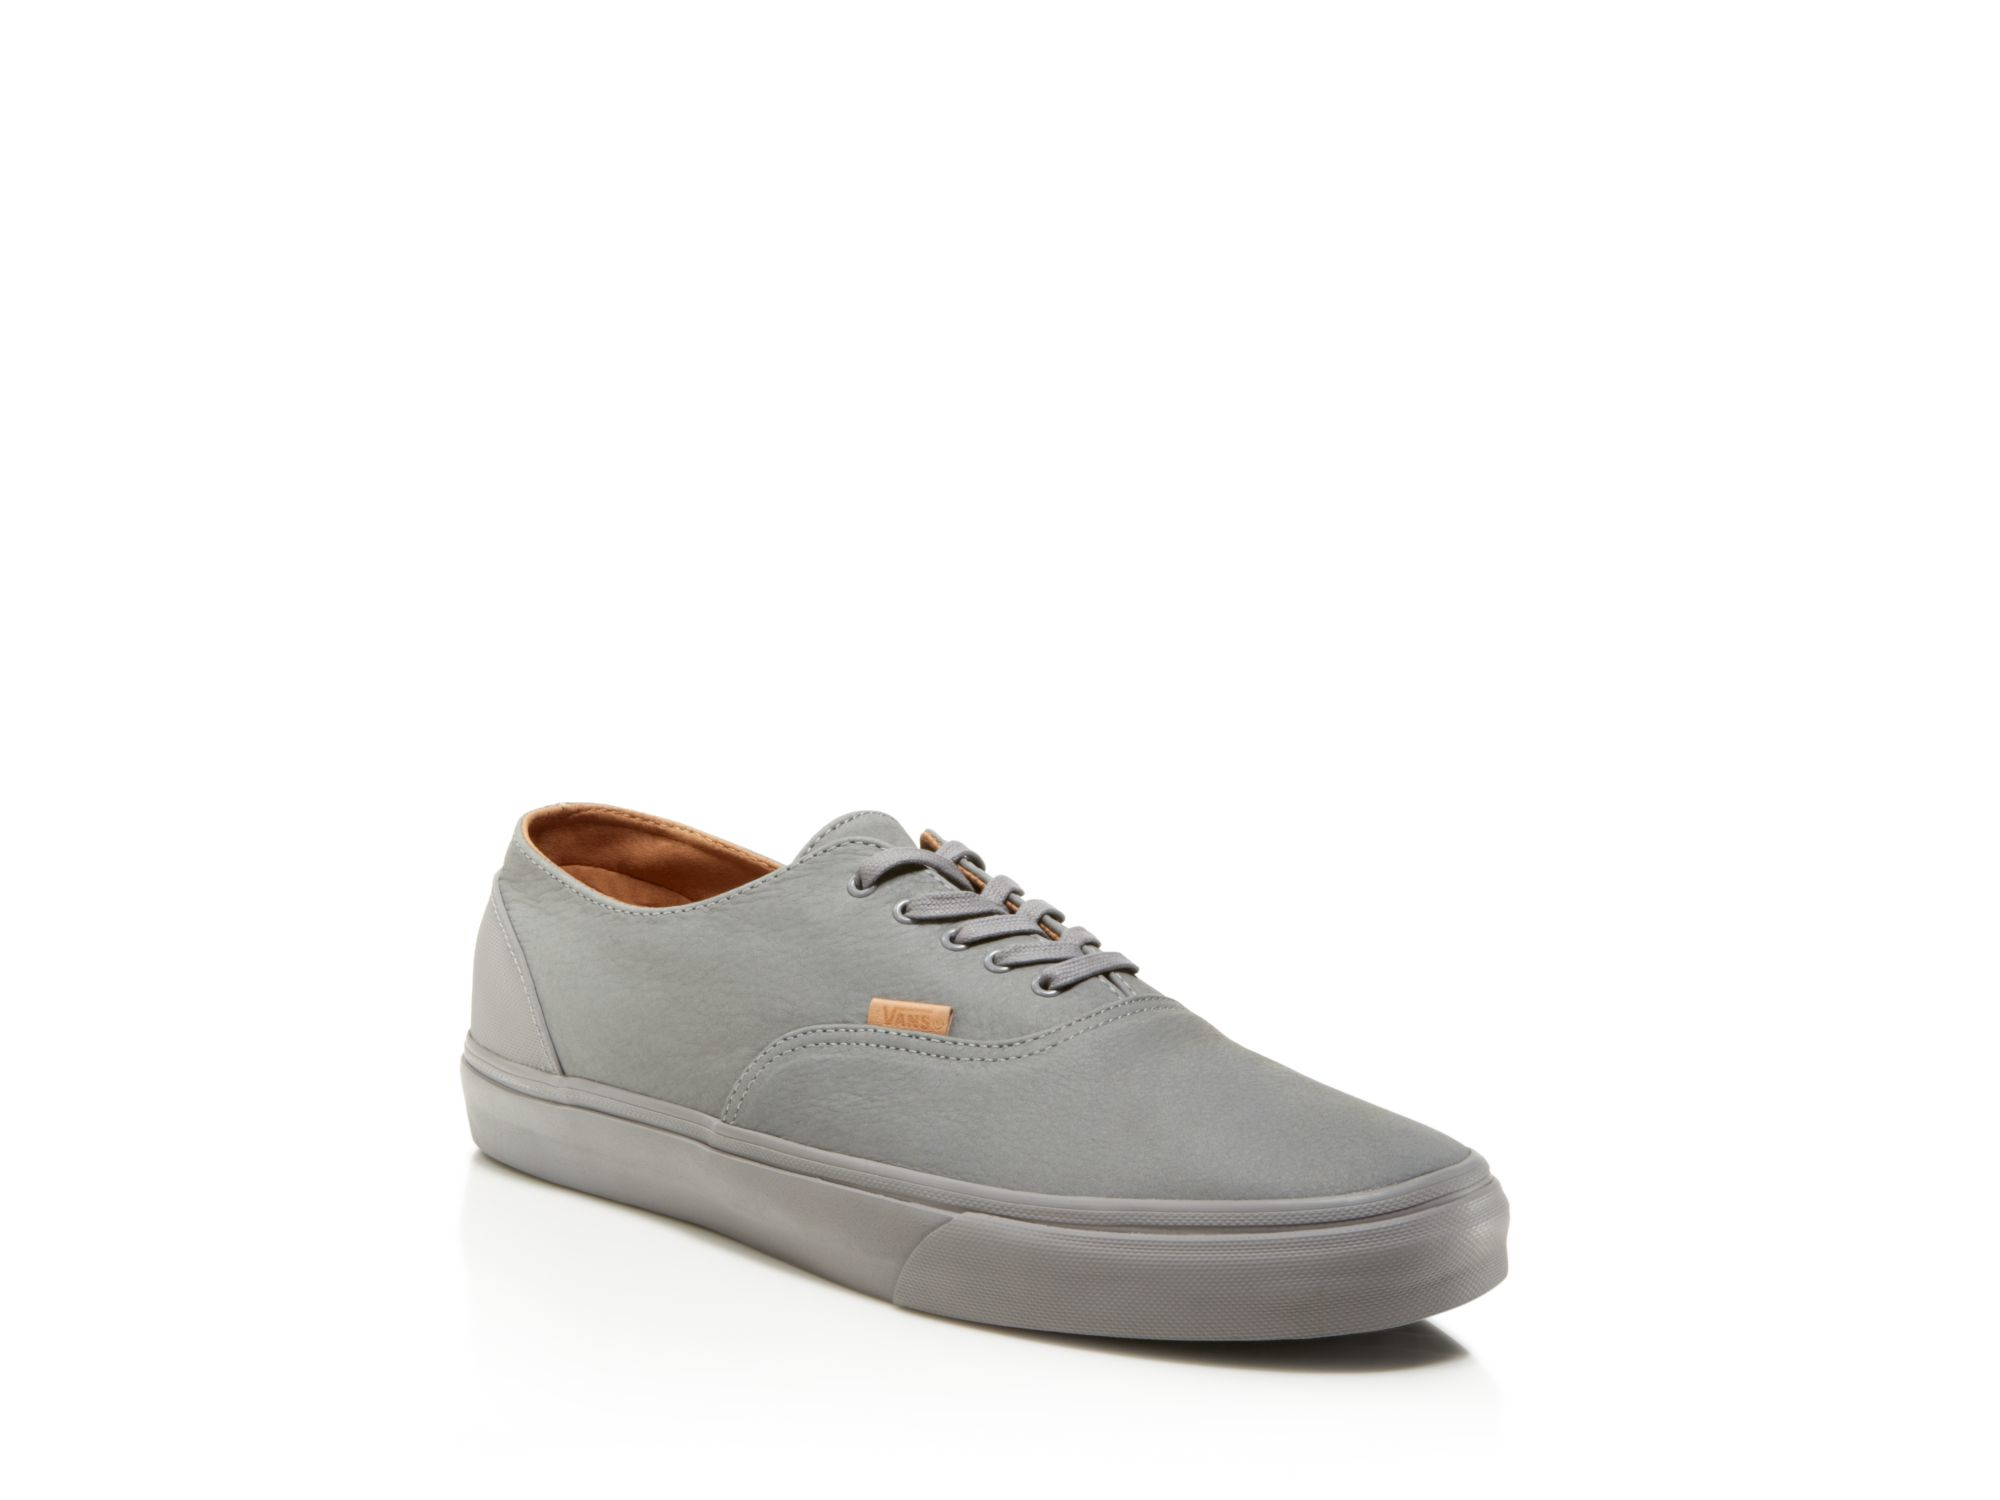 ecab1bf59b Lyst - Vans Era Decon Ca Mono Leather Sneakers in Gray for Men